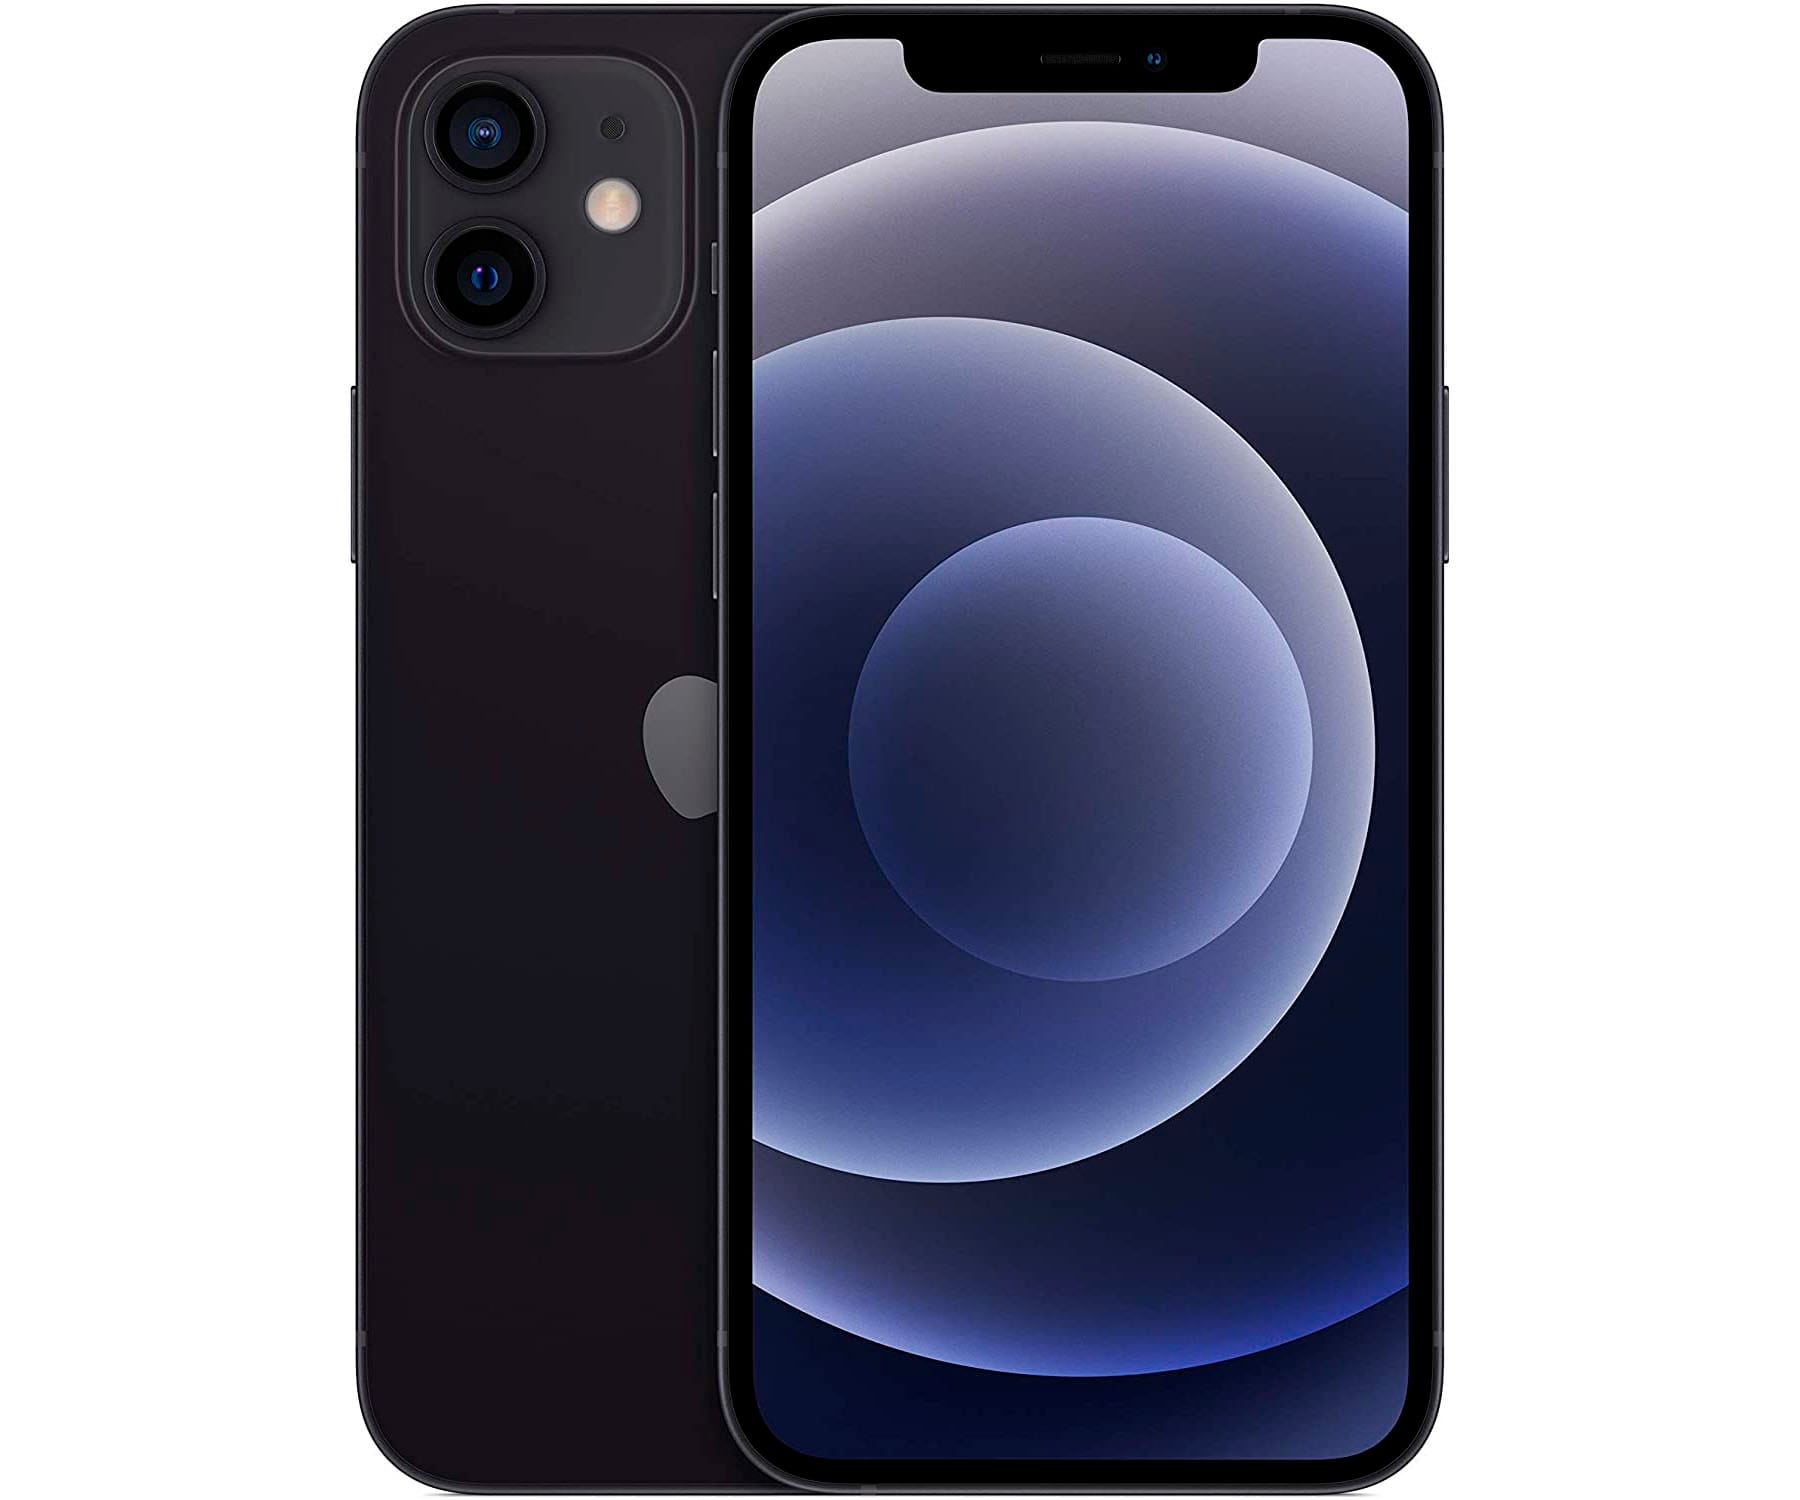 APPLE IPHONE 12 NEGRO MÓVIL DUAL SIM 5G 6.1'' OLED SUPER RETINA XDR CPU A14 BIONIC 128GB 6GB RAM DUALCAM 12MP SELFIES 12MP